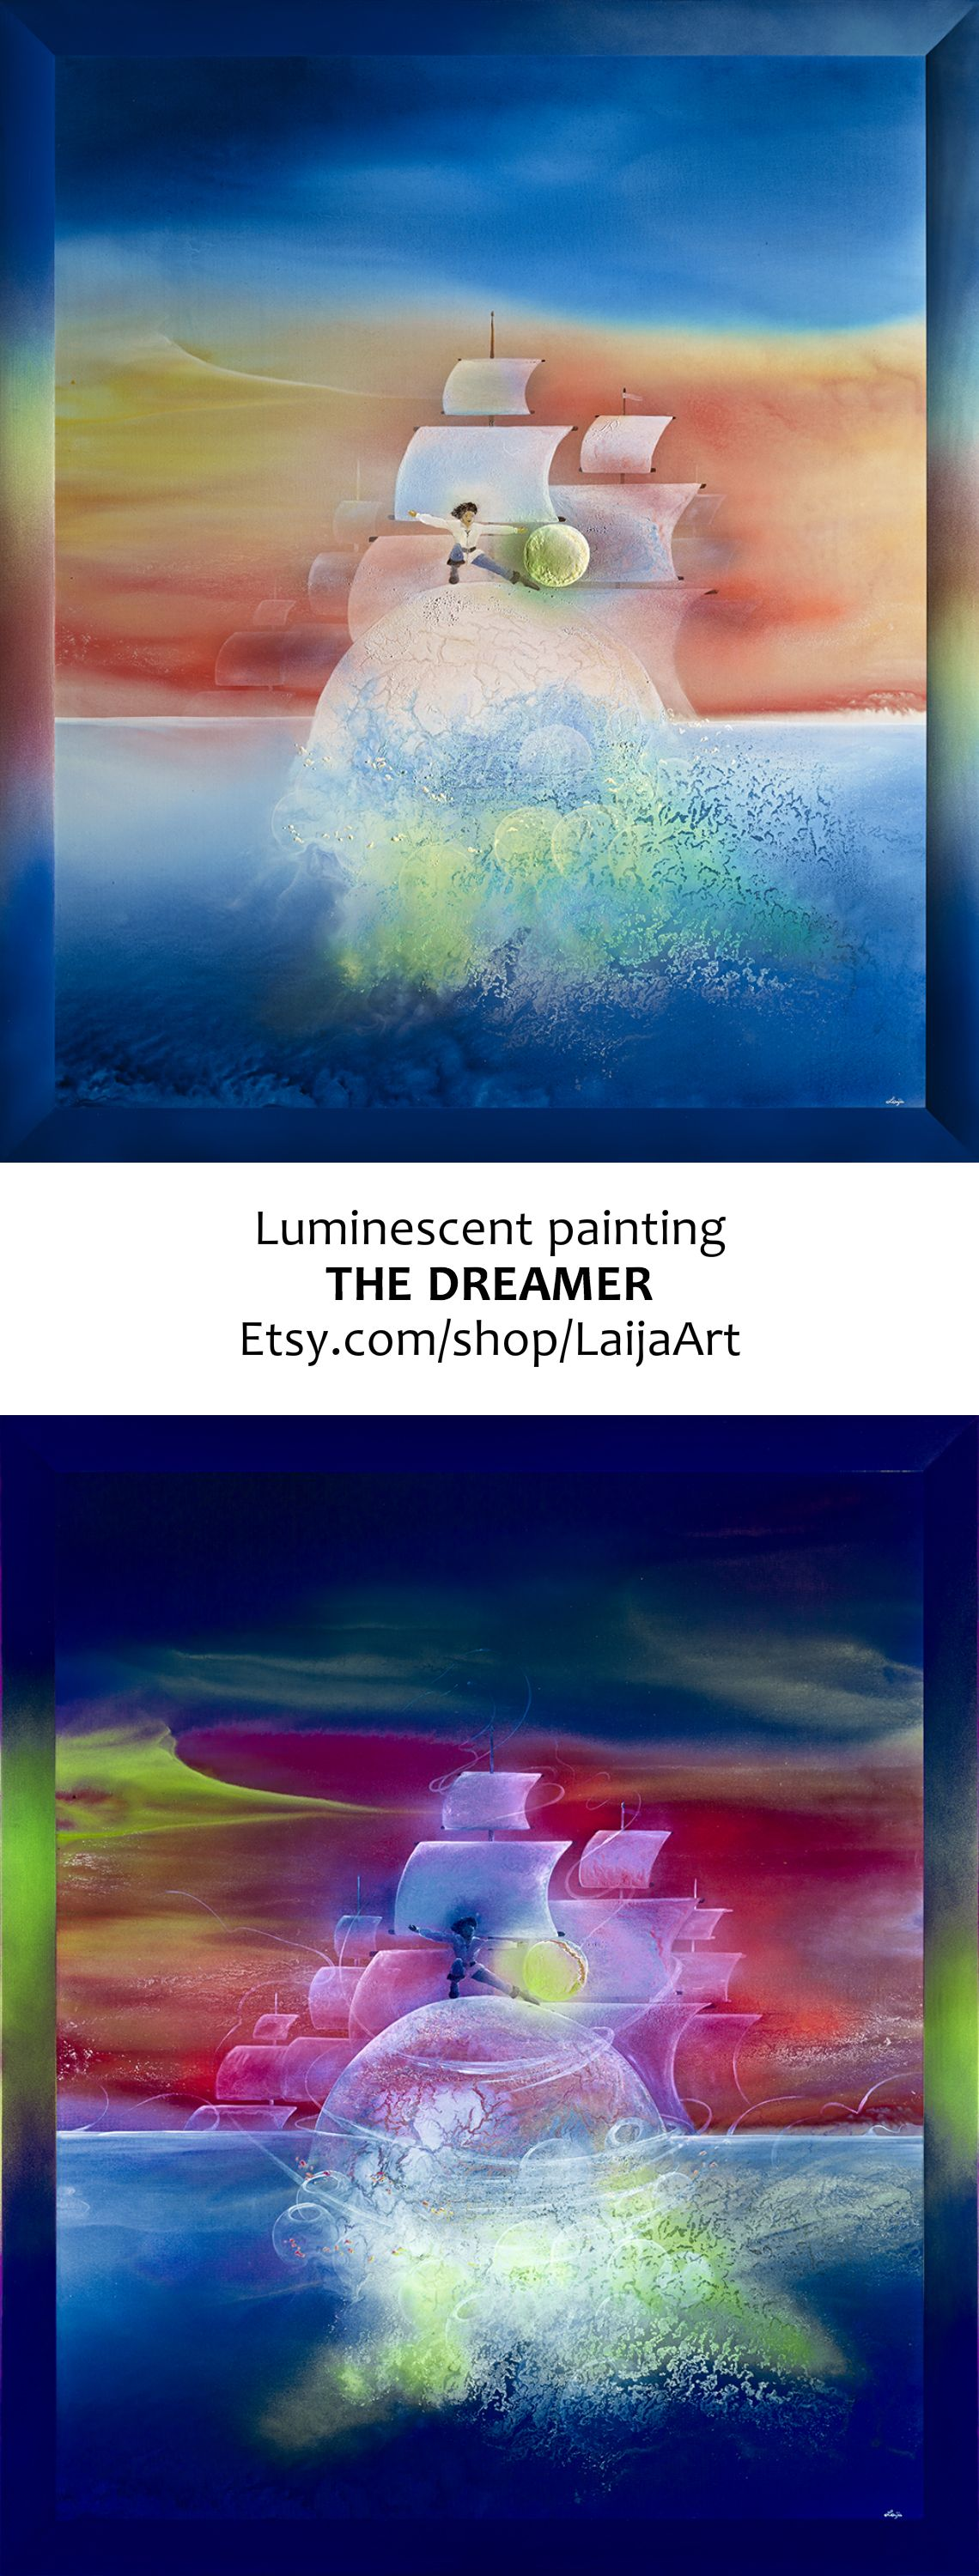 Luminescent painting THE DREAMER by Laija Art • 2013, canvas   acrylic, daylight and UV light   Painted on high quality canvas using professional acrylic and luminescent paints. The beautiful original luminescent painting THE DREAMER is created in 2013. This painting could be an excellent artwork for your home or office decoration and also as a precious piece for your art collection • Painting Ideas   Home Decor   Art   Art Ideas   Contemporary Art   Abstract Art   Fine Art • Available on…